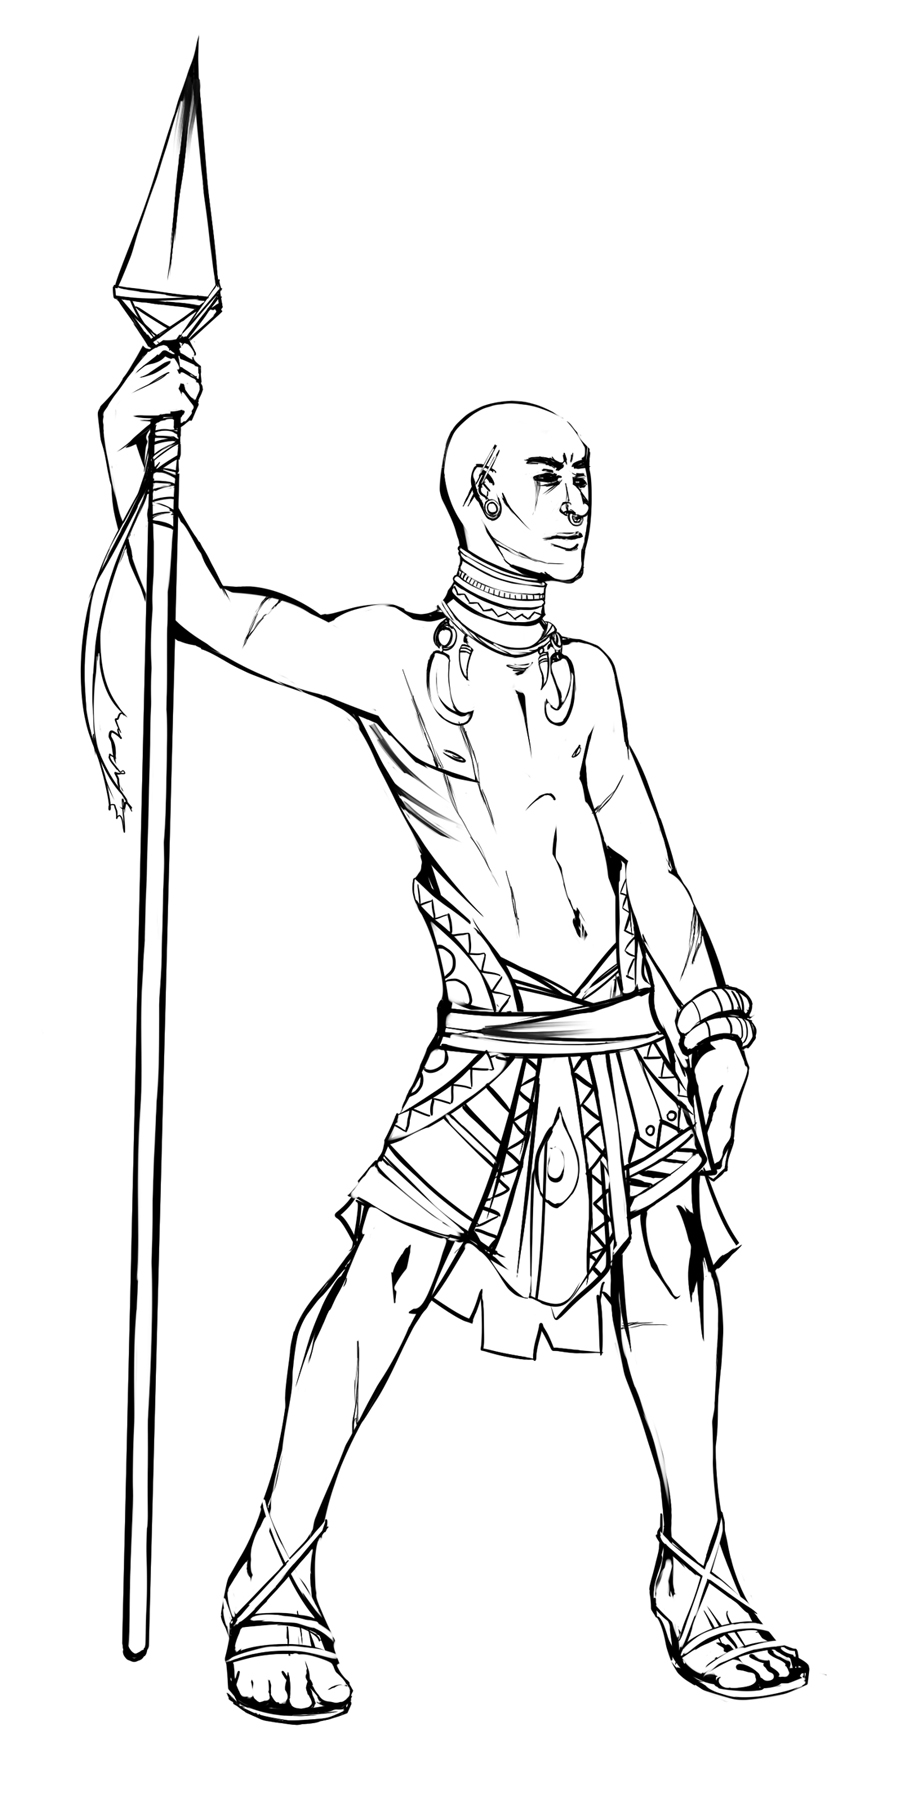 Rhamka Tribal Warrior - Inicial Sketches